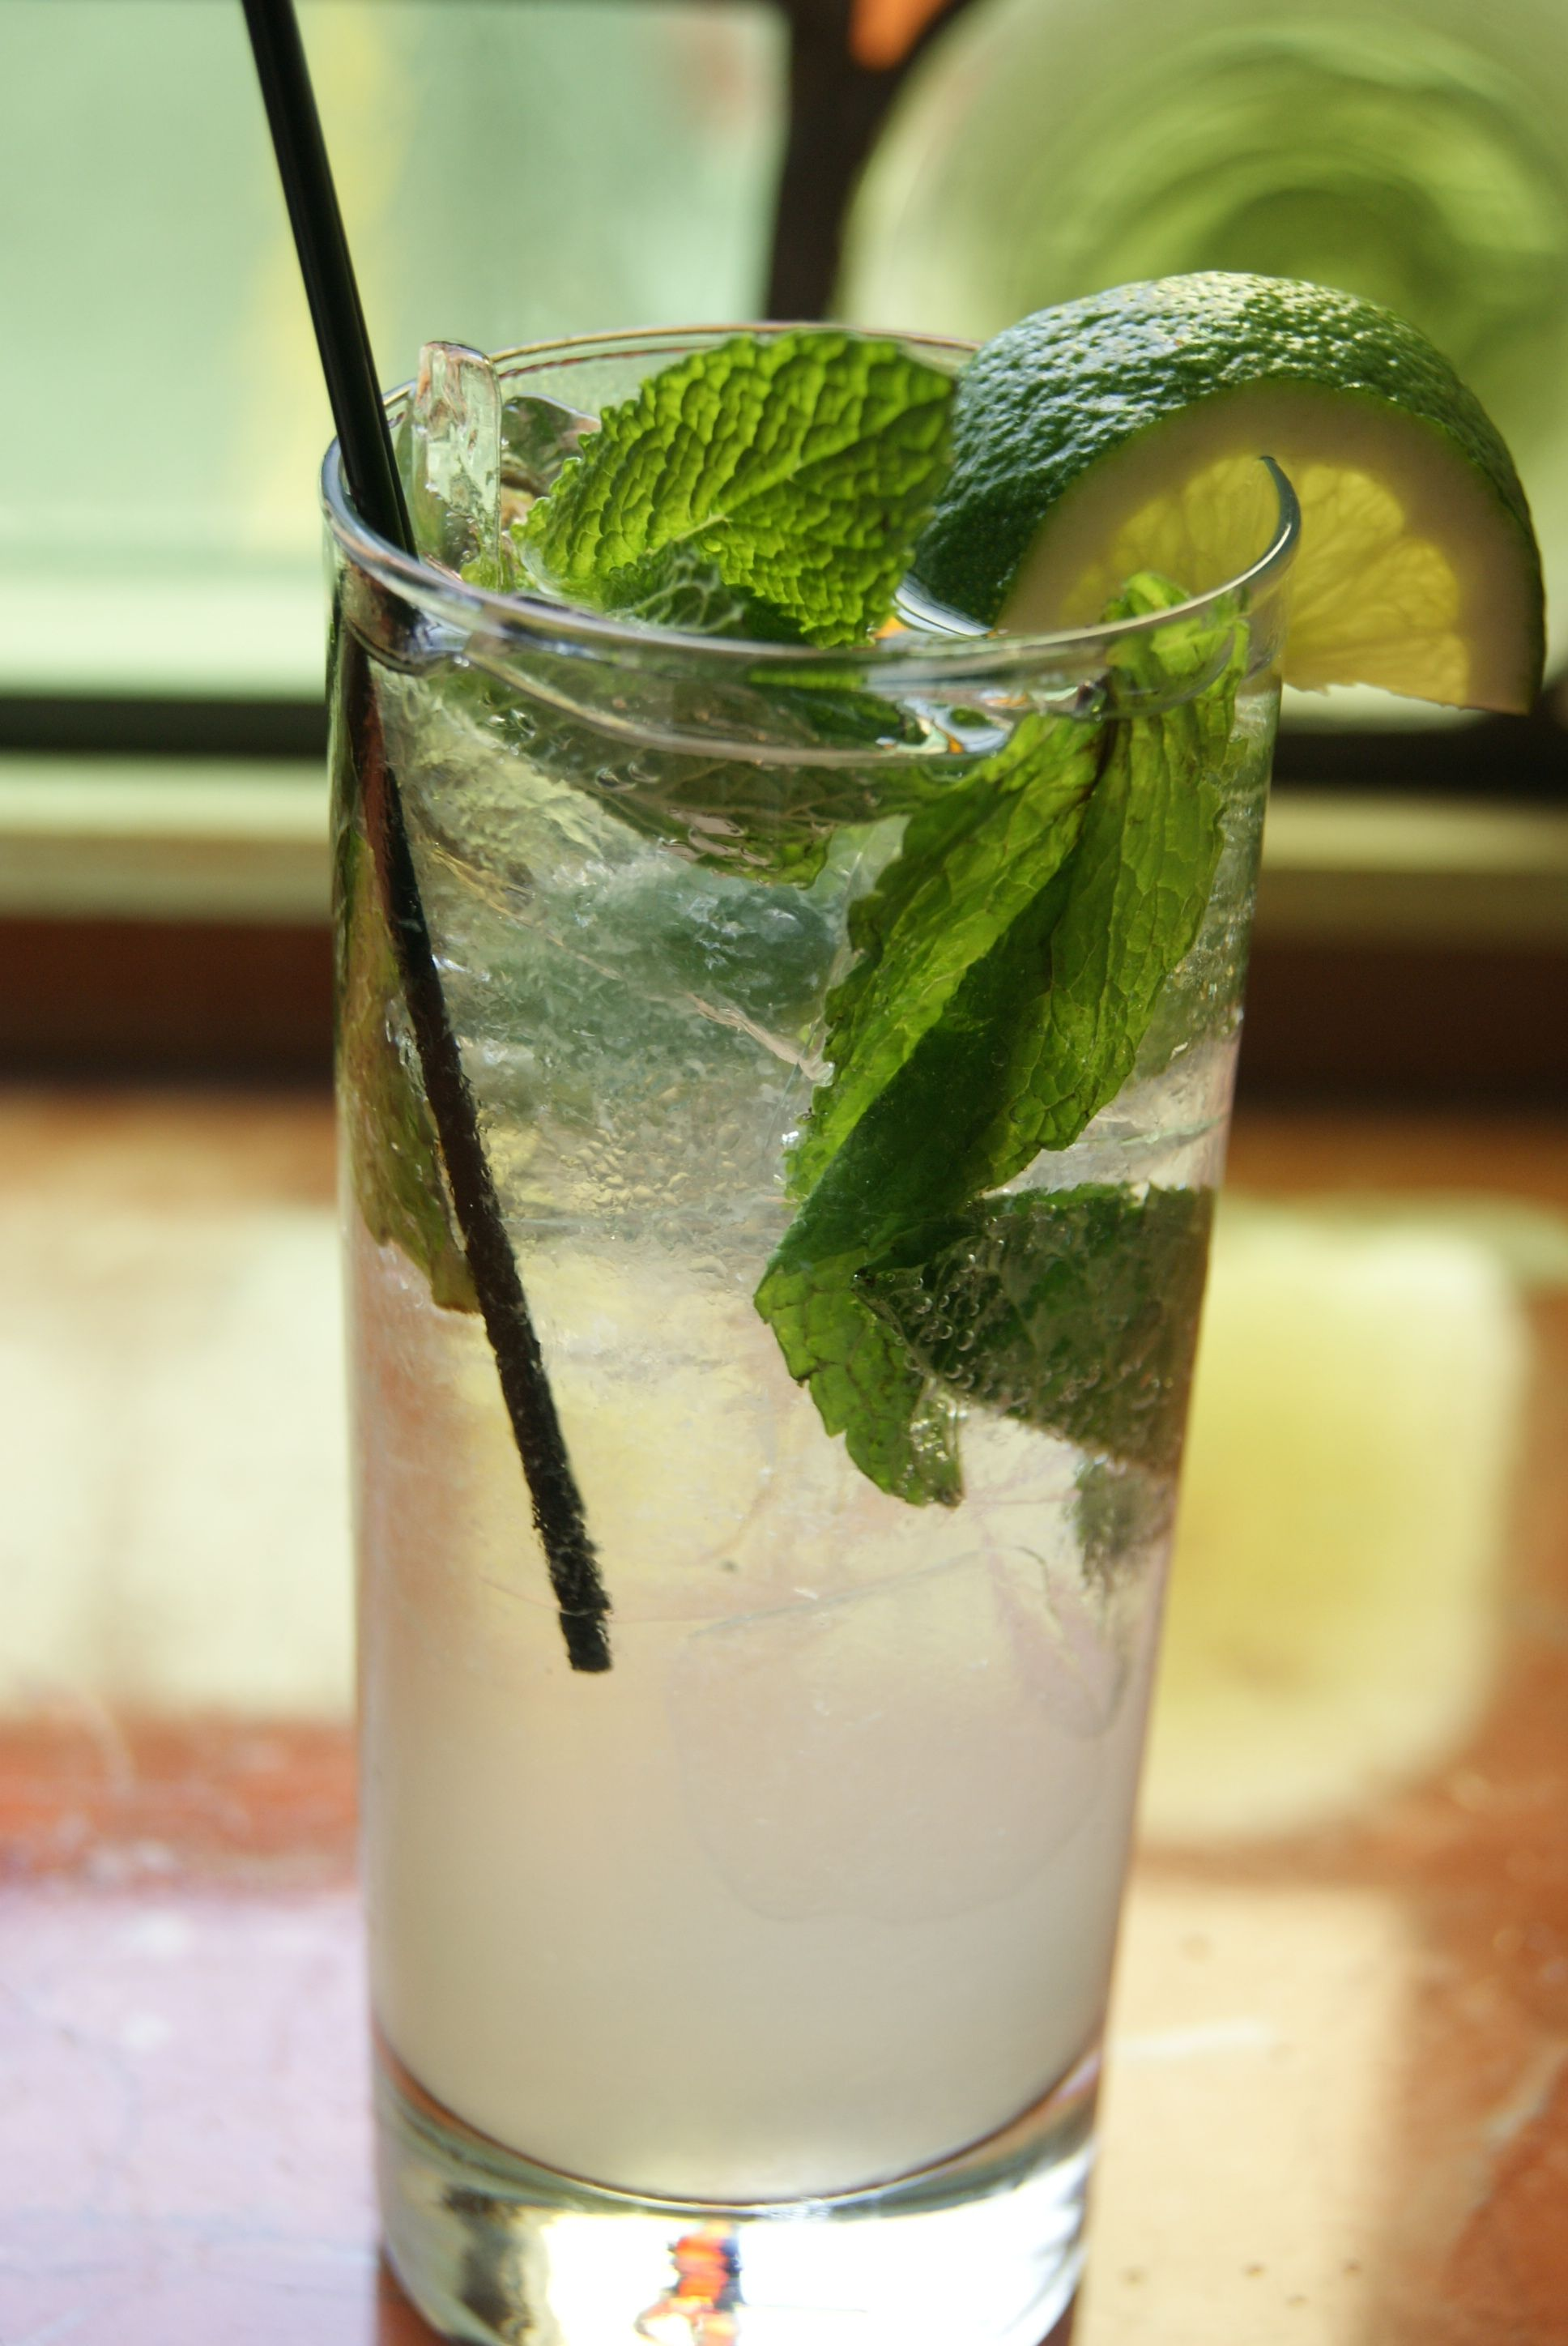 Elderflower Mojito Captain Morgan White Rum St Germain Liqueur With Muddled Mint Syrup Lime Tall With Soda St Germain Liqueur White Rum Elderflower